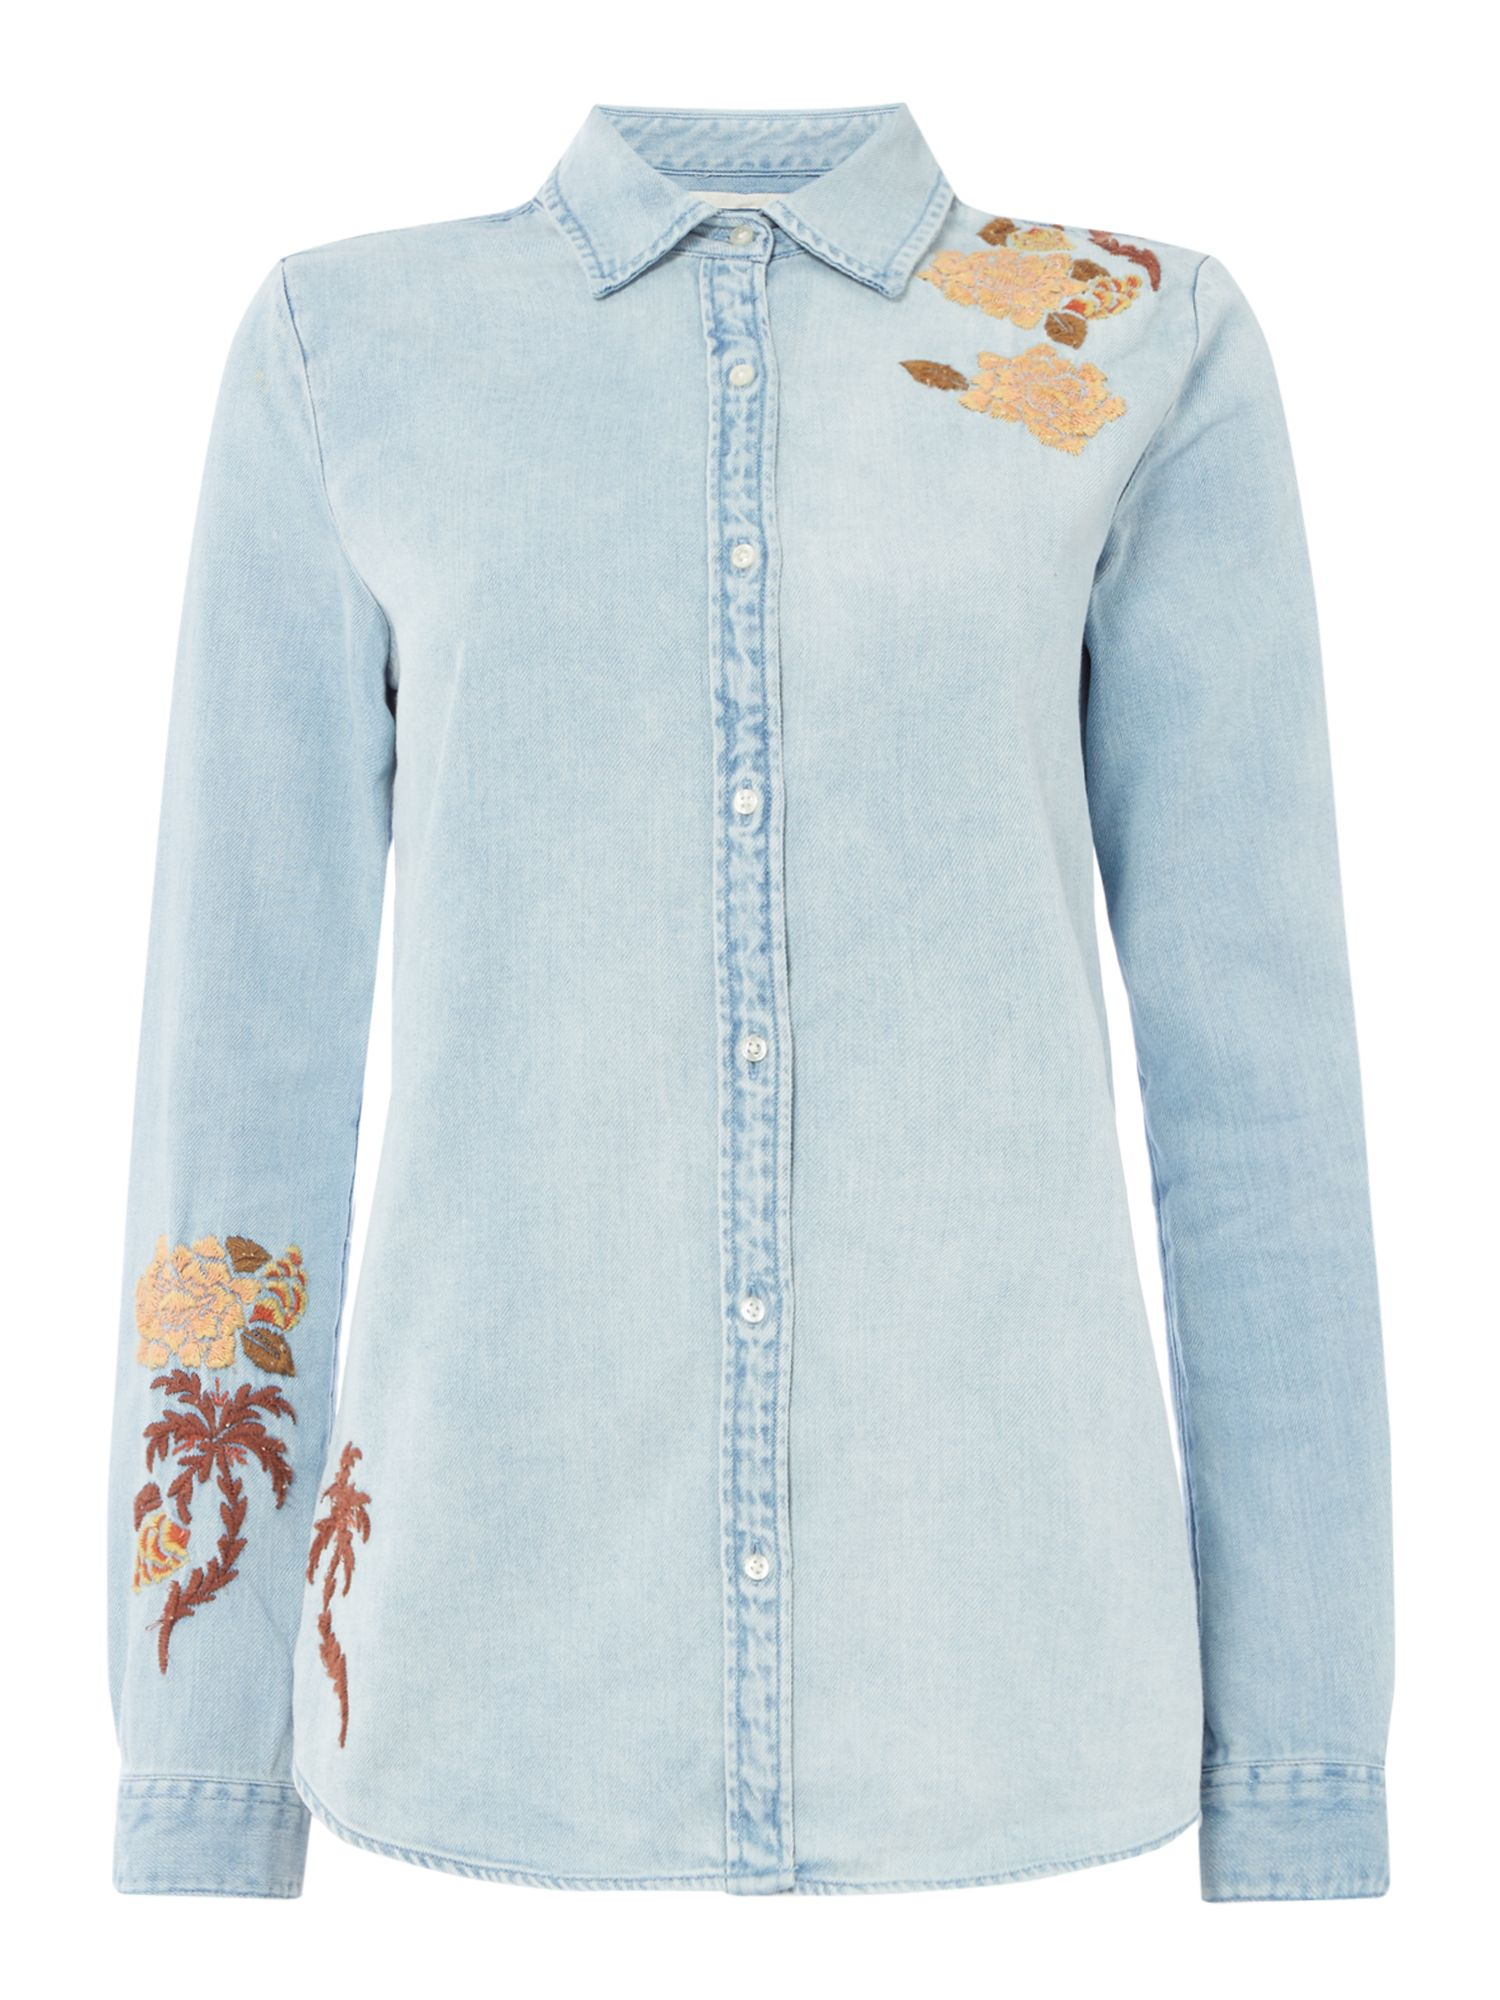 Maison Scotch Denim Shirt with embroidery, Multi-Coloured